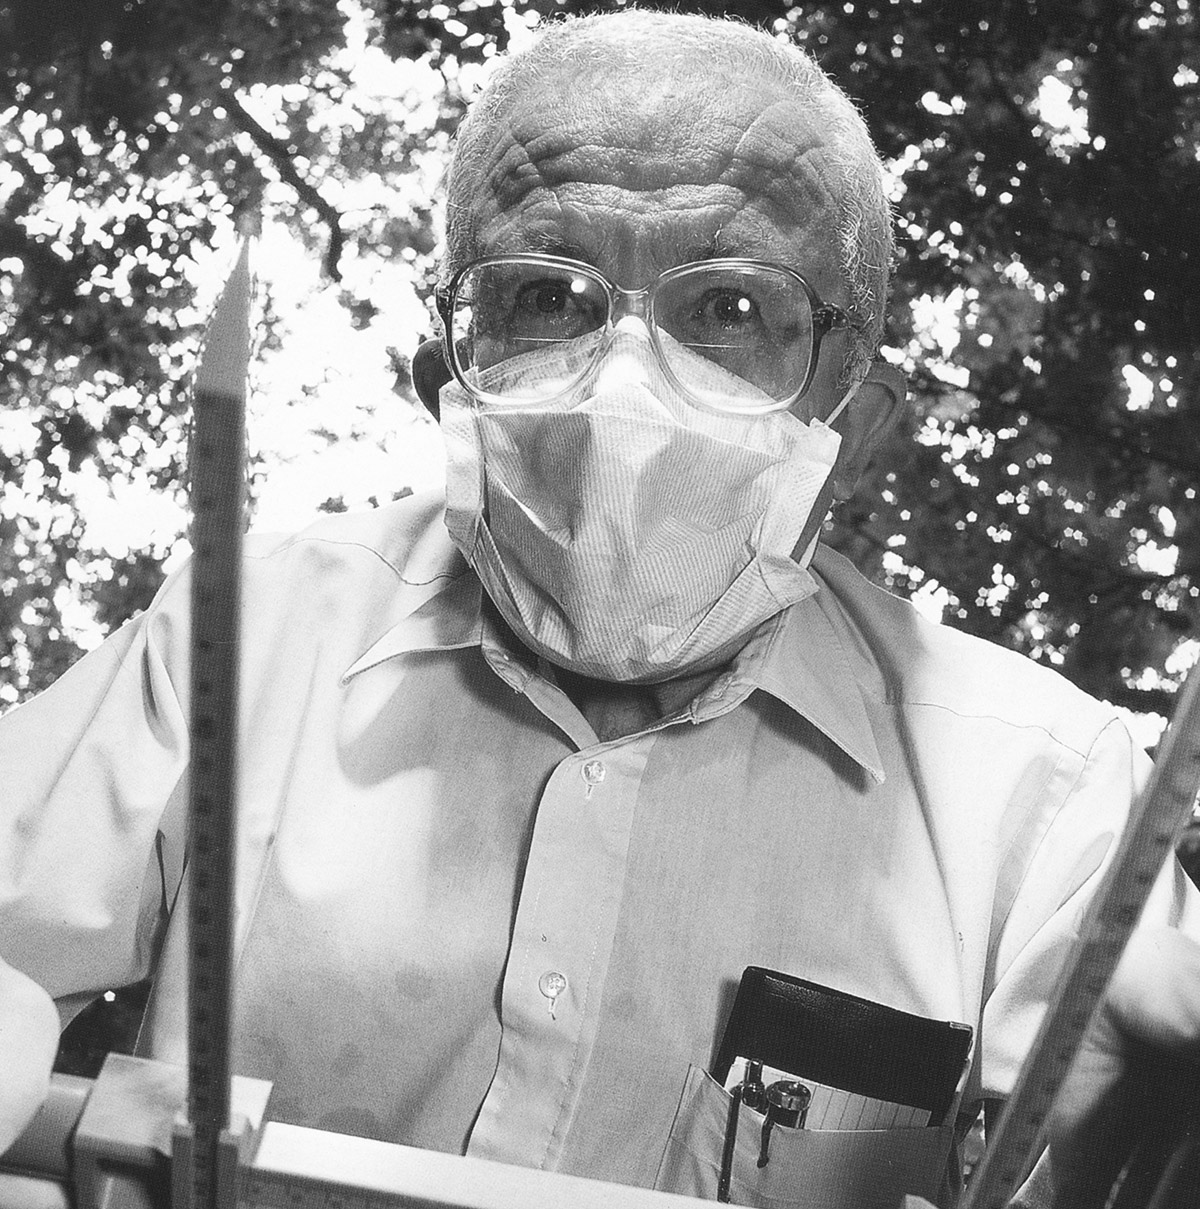 Dr. Bill Bass, forensic anthropologist